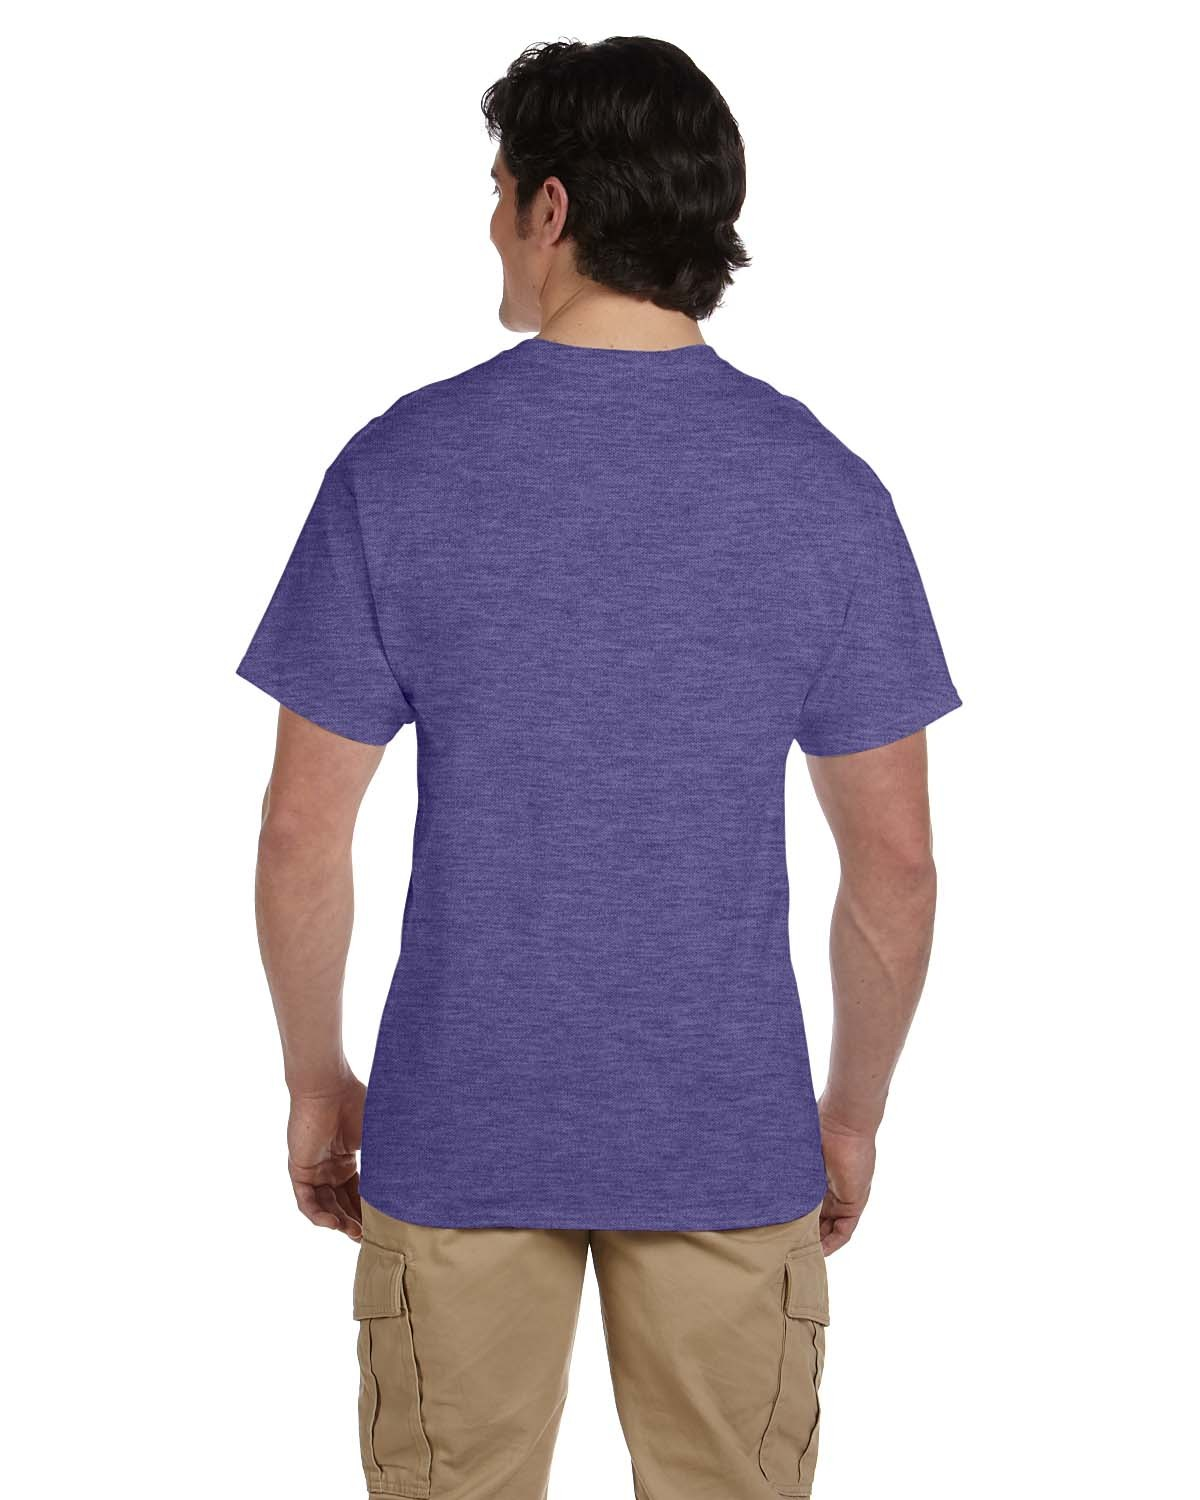 3931 Fruit of the Loom RETRO HTH PURP